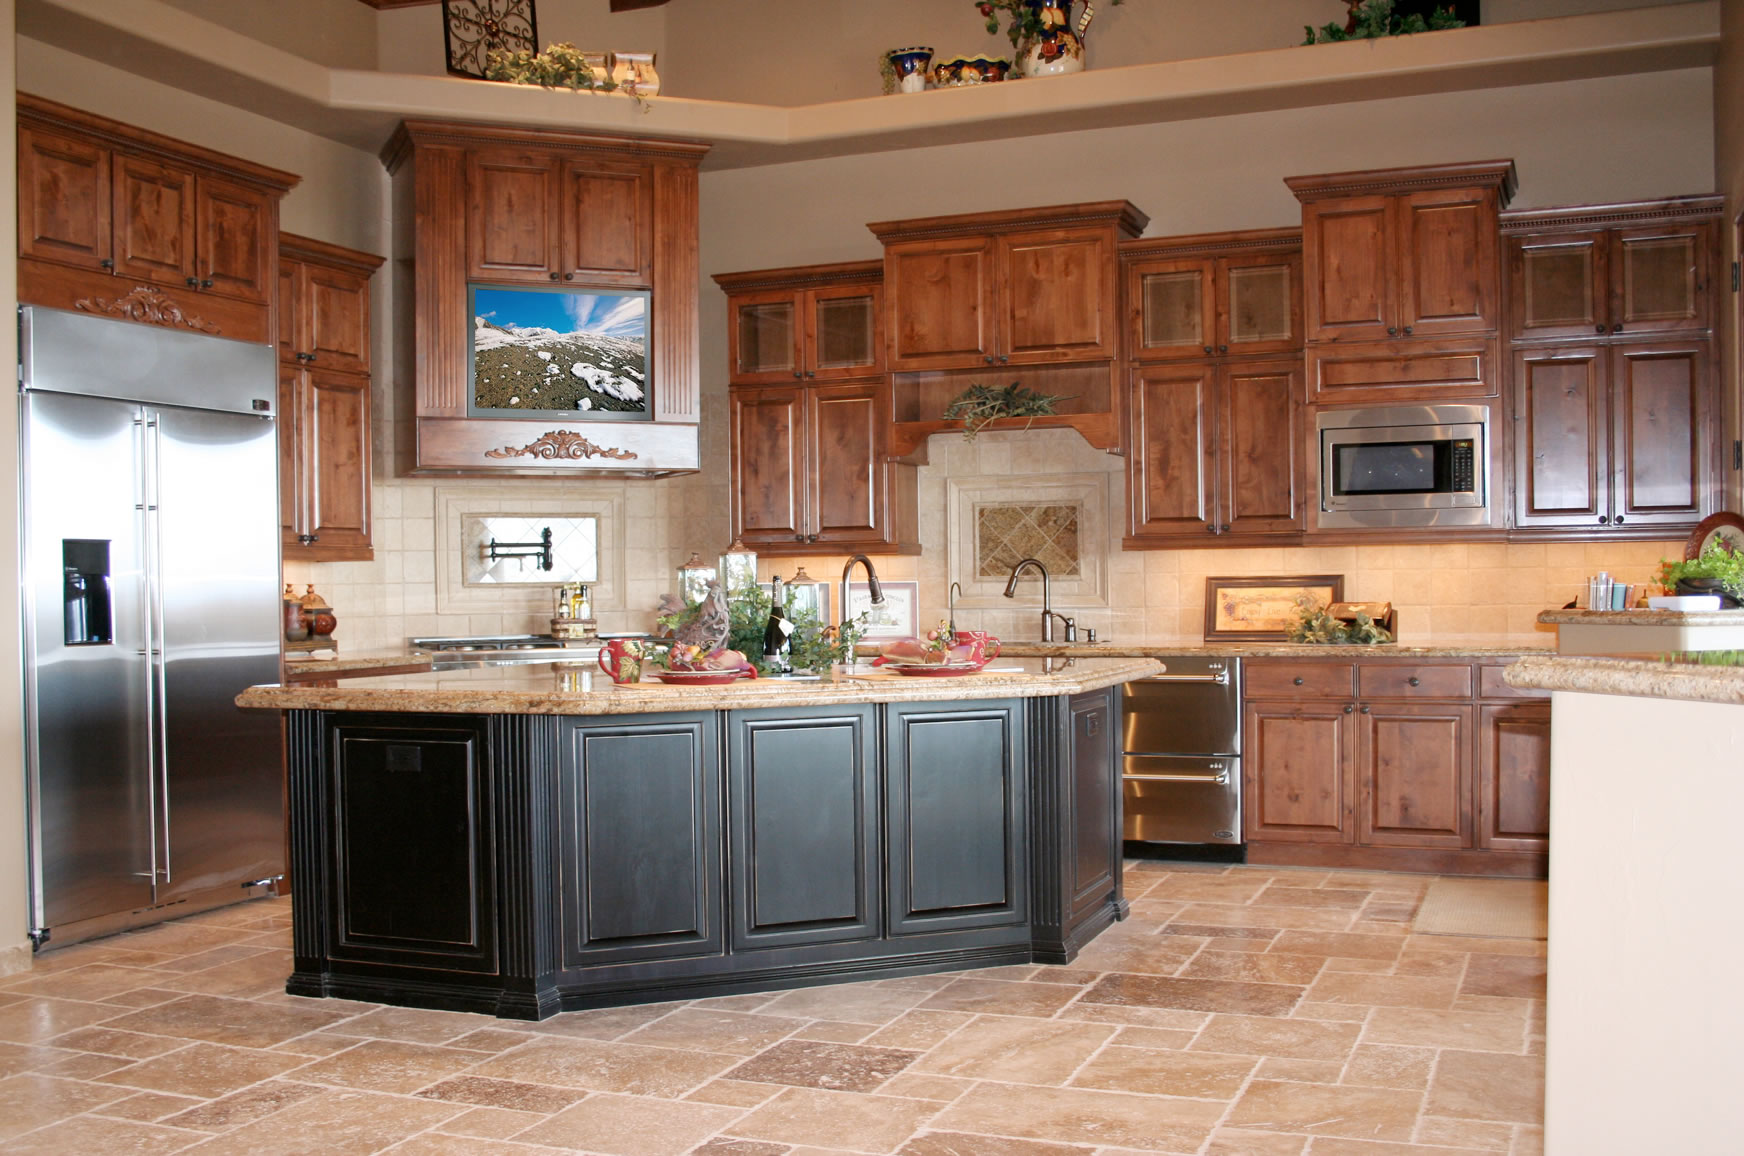 Kitchen image kitchen bathroom design center Kitchen cabinet designs